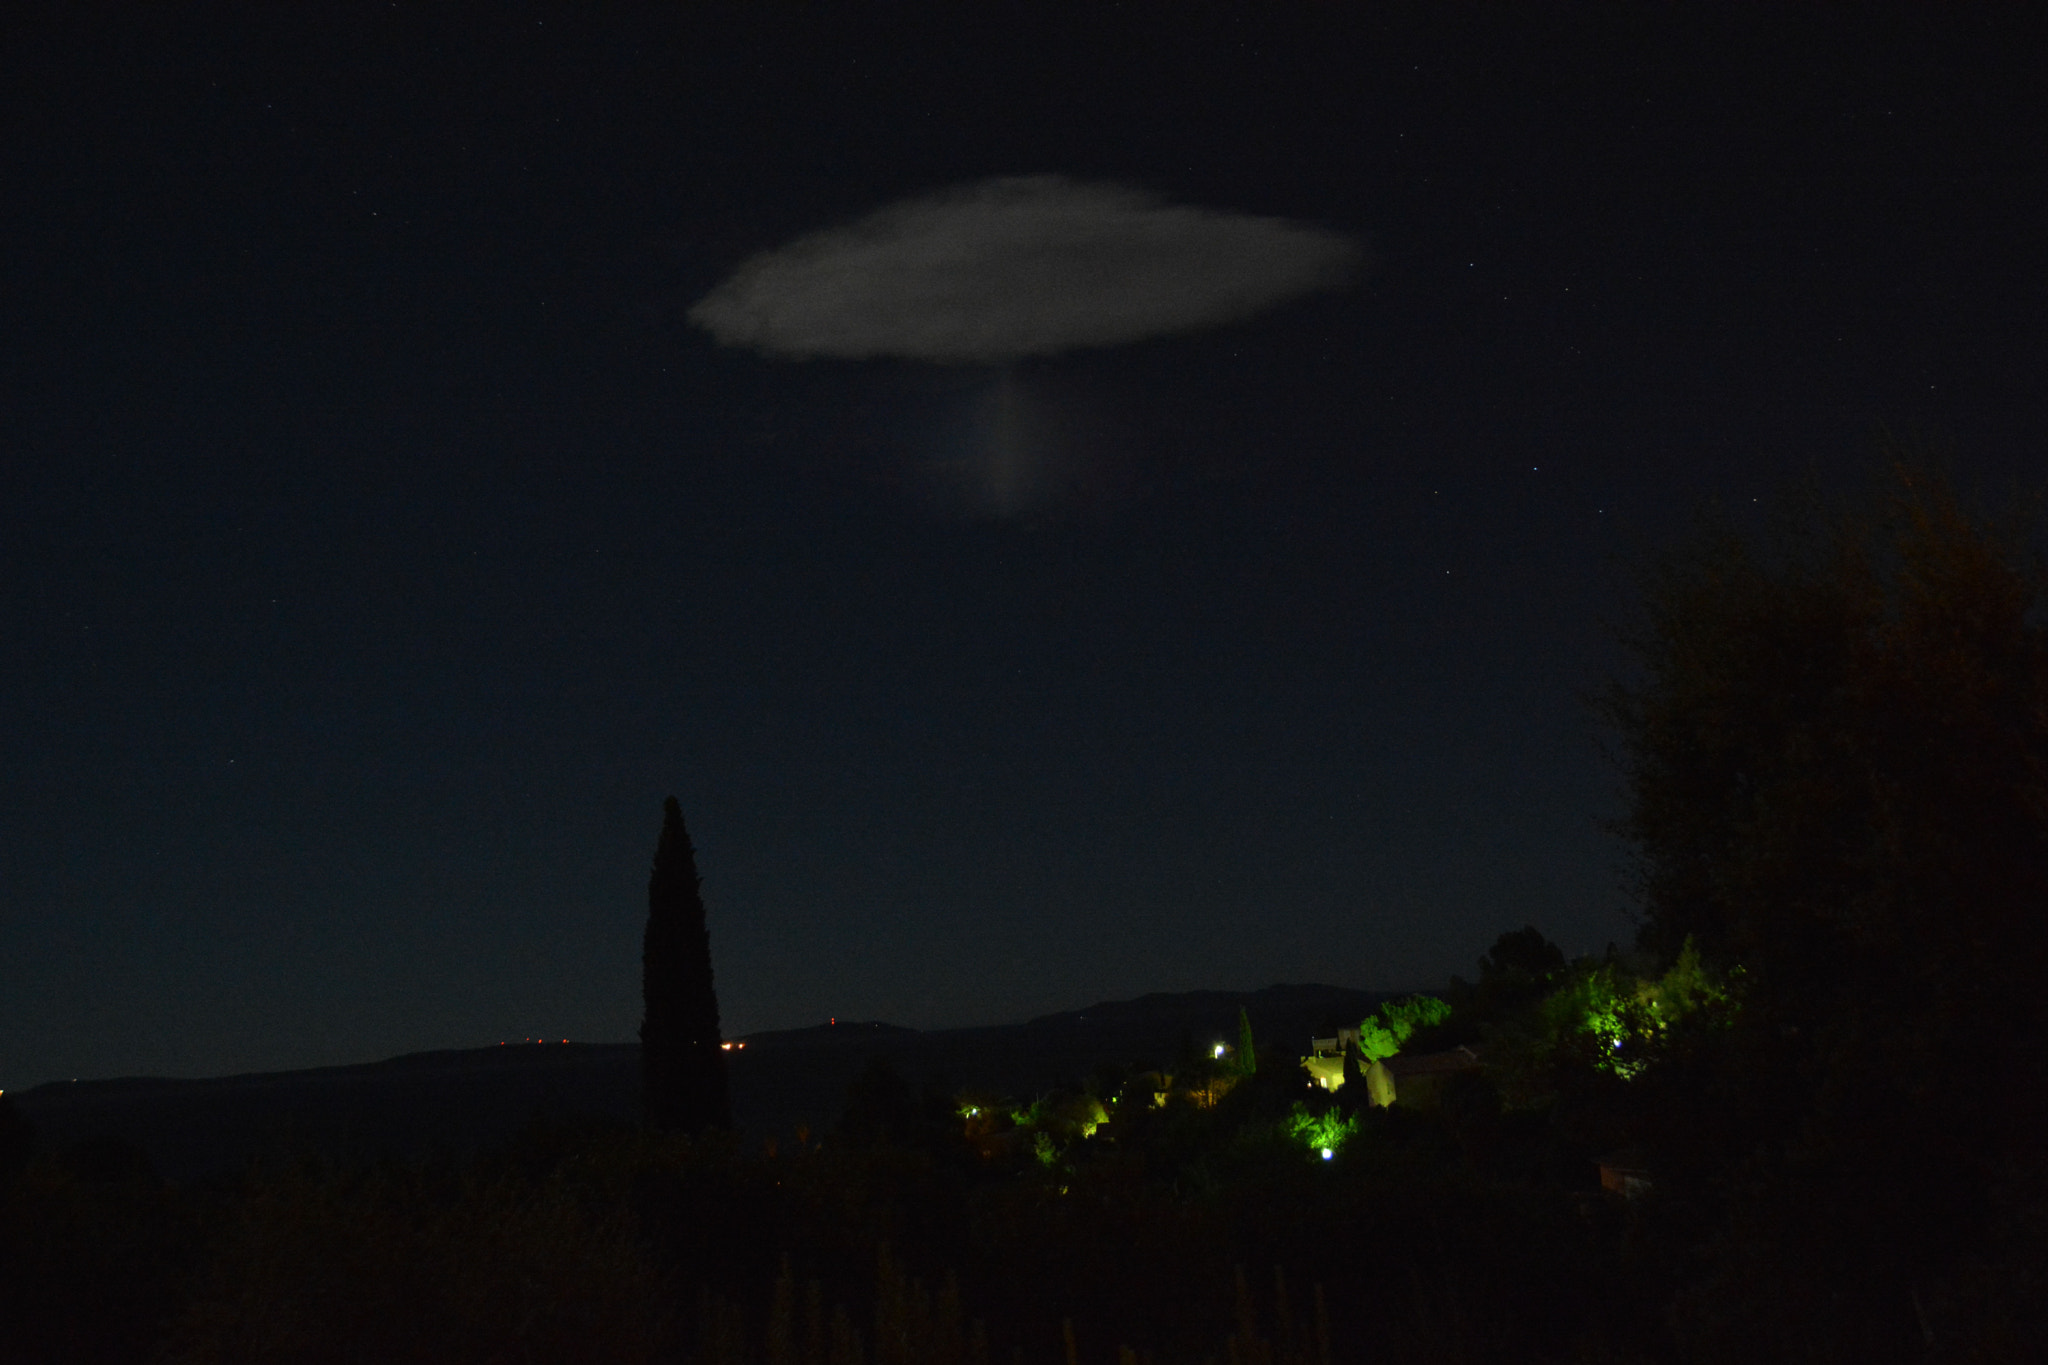 Photograph UFO by Ruud Eelderink on 500px